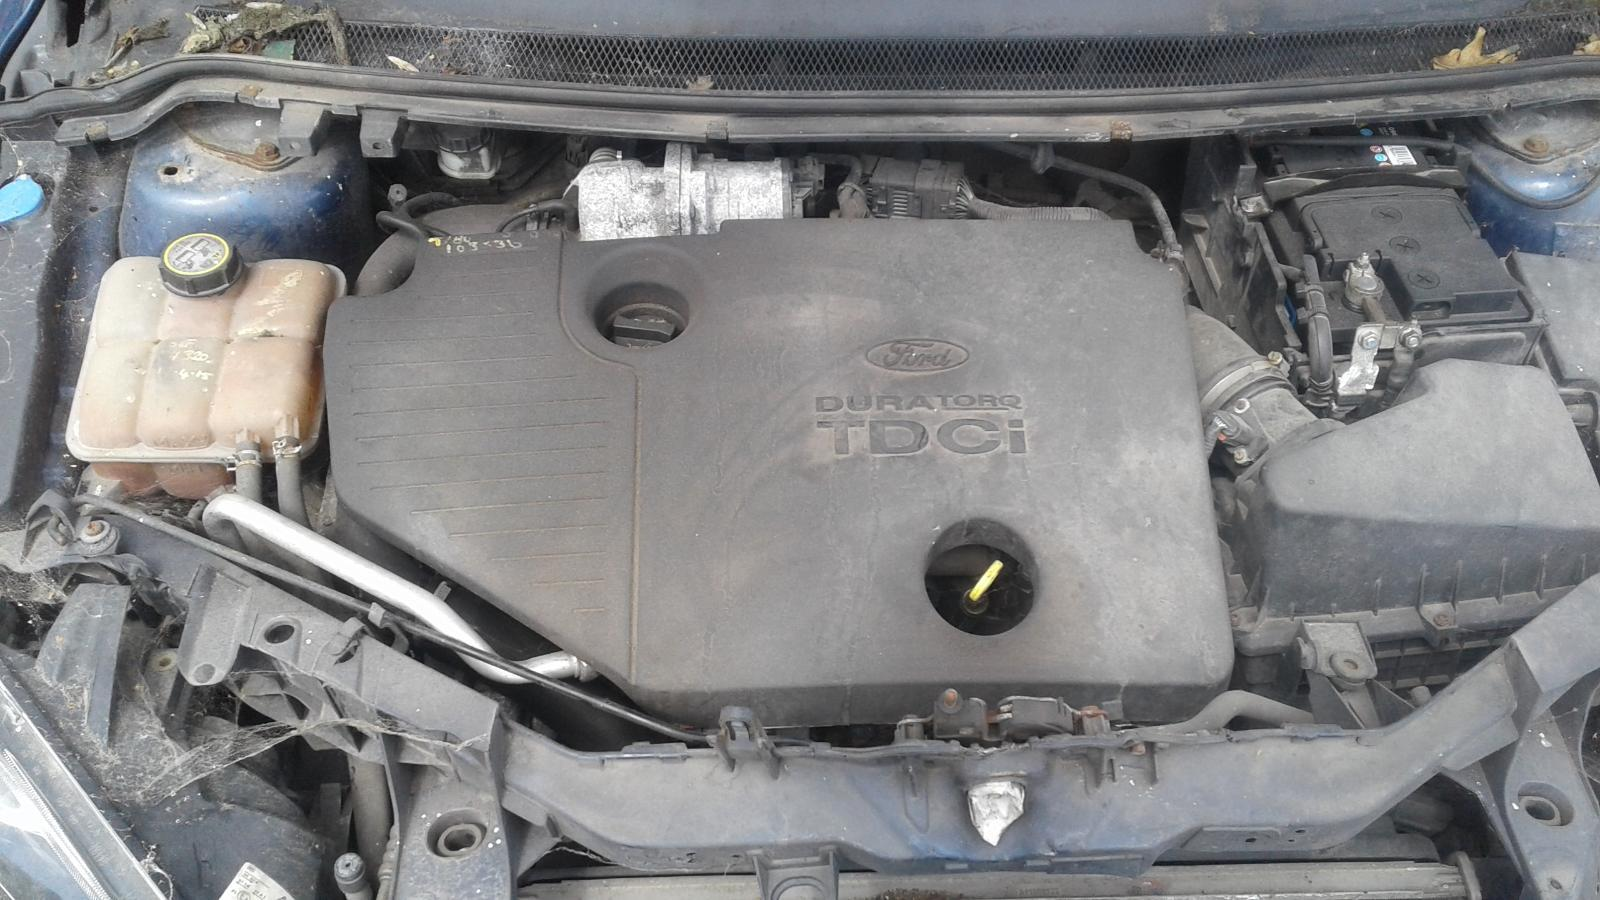 2007 FORD FOCUS Image